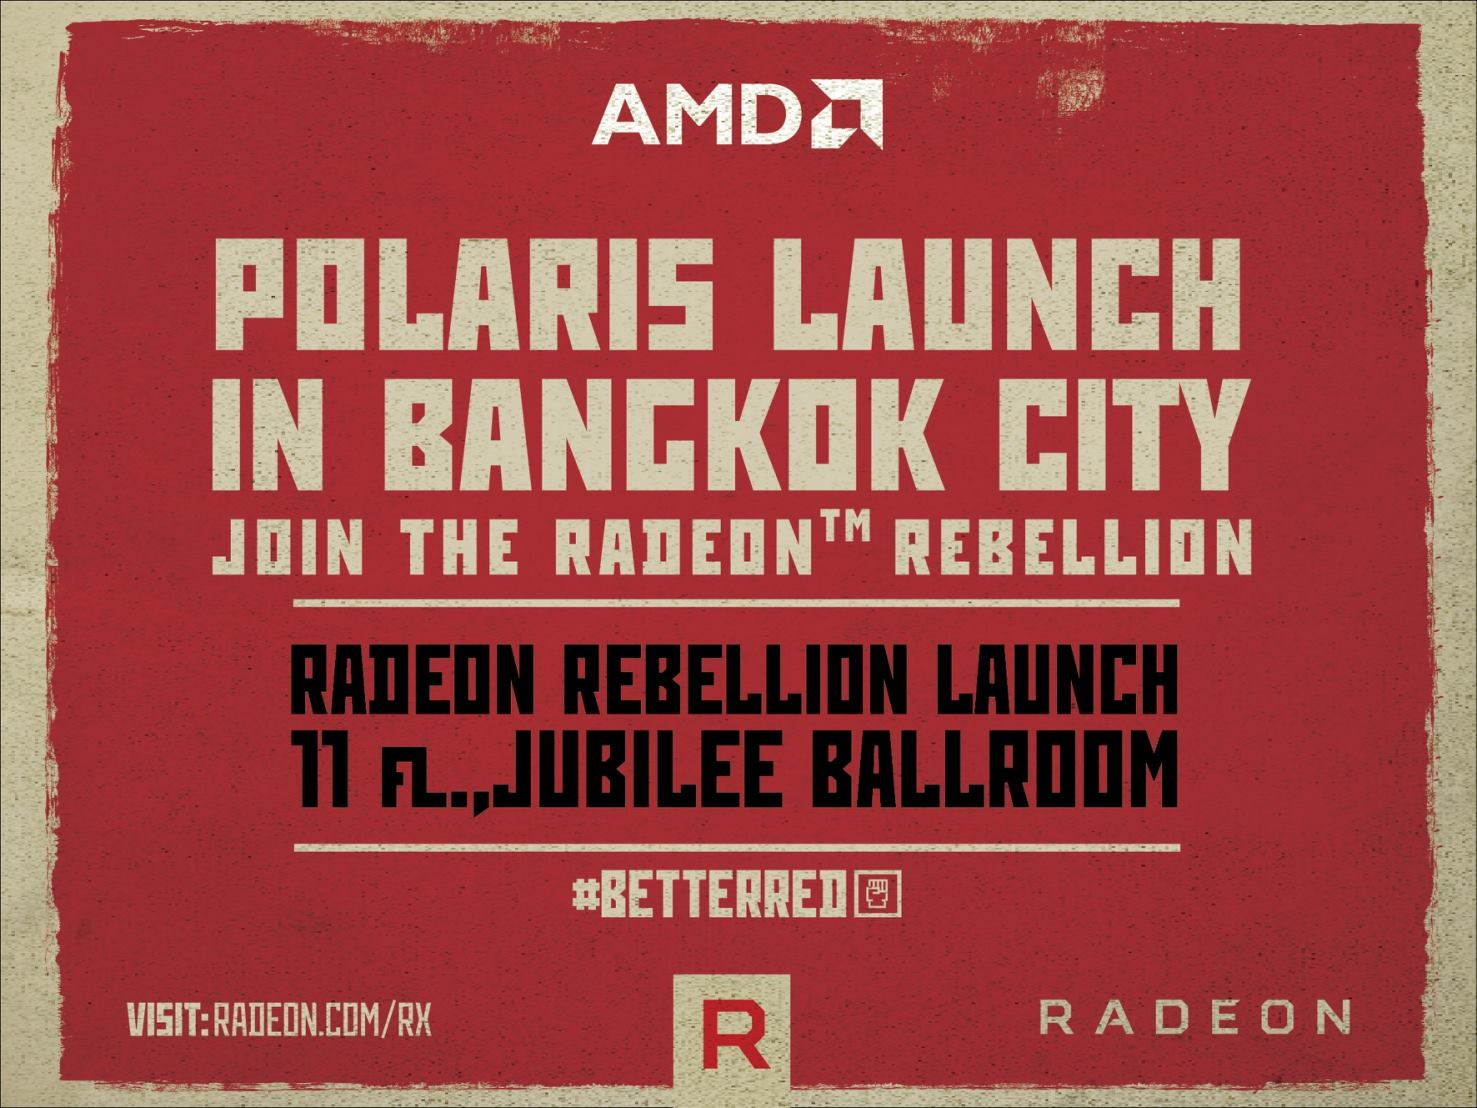 1 ภาพบรรยากาศงาน AMD POLARIS LAUNCH IN BANGKOK CITY JOIN THE RADEON REBELLION